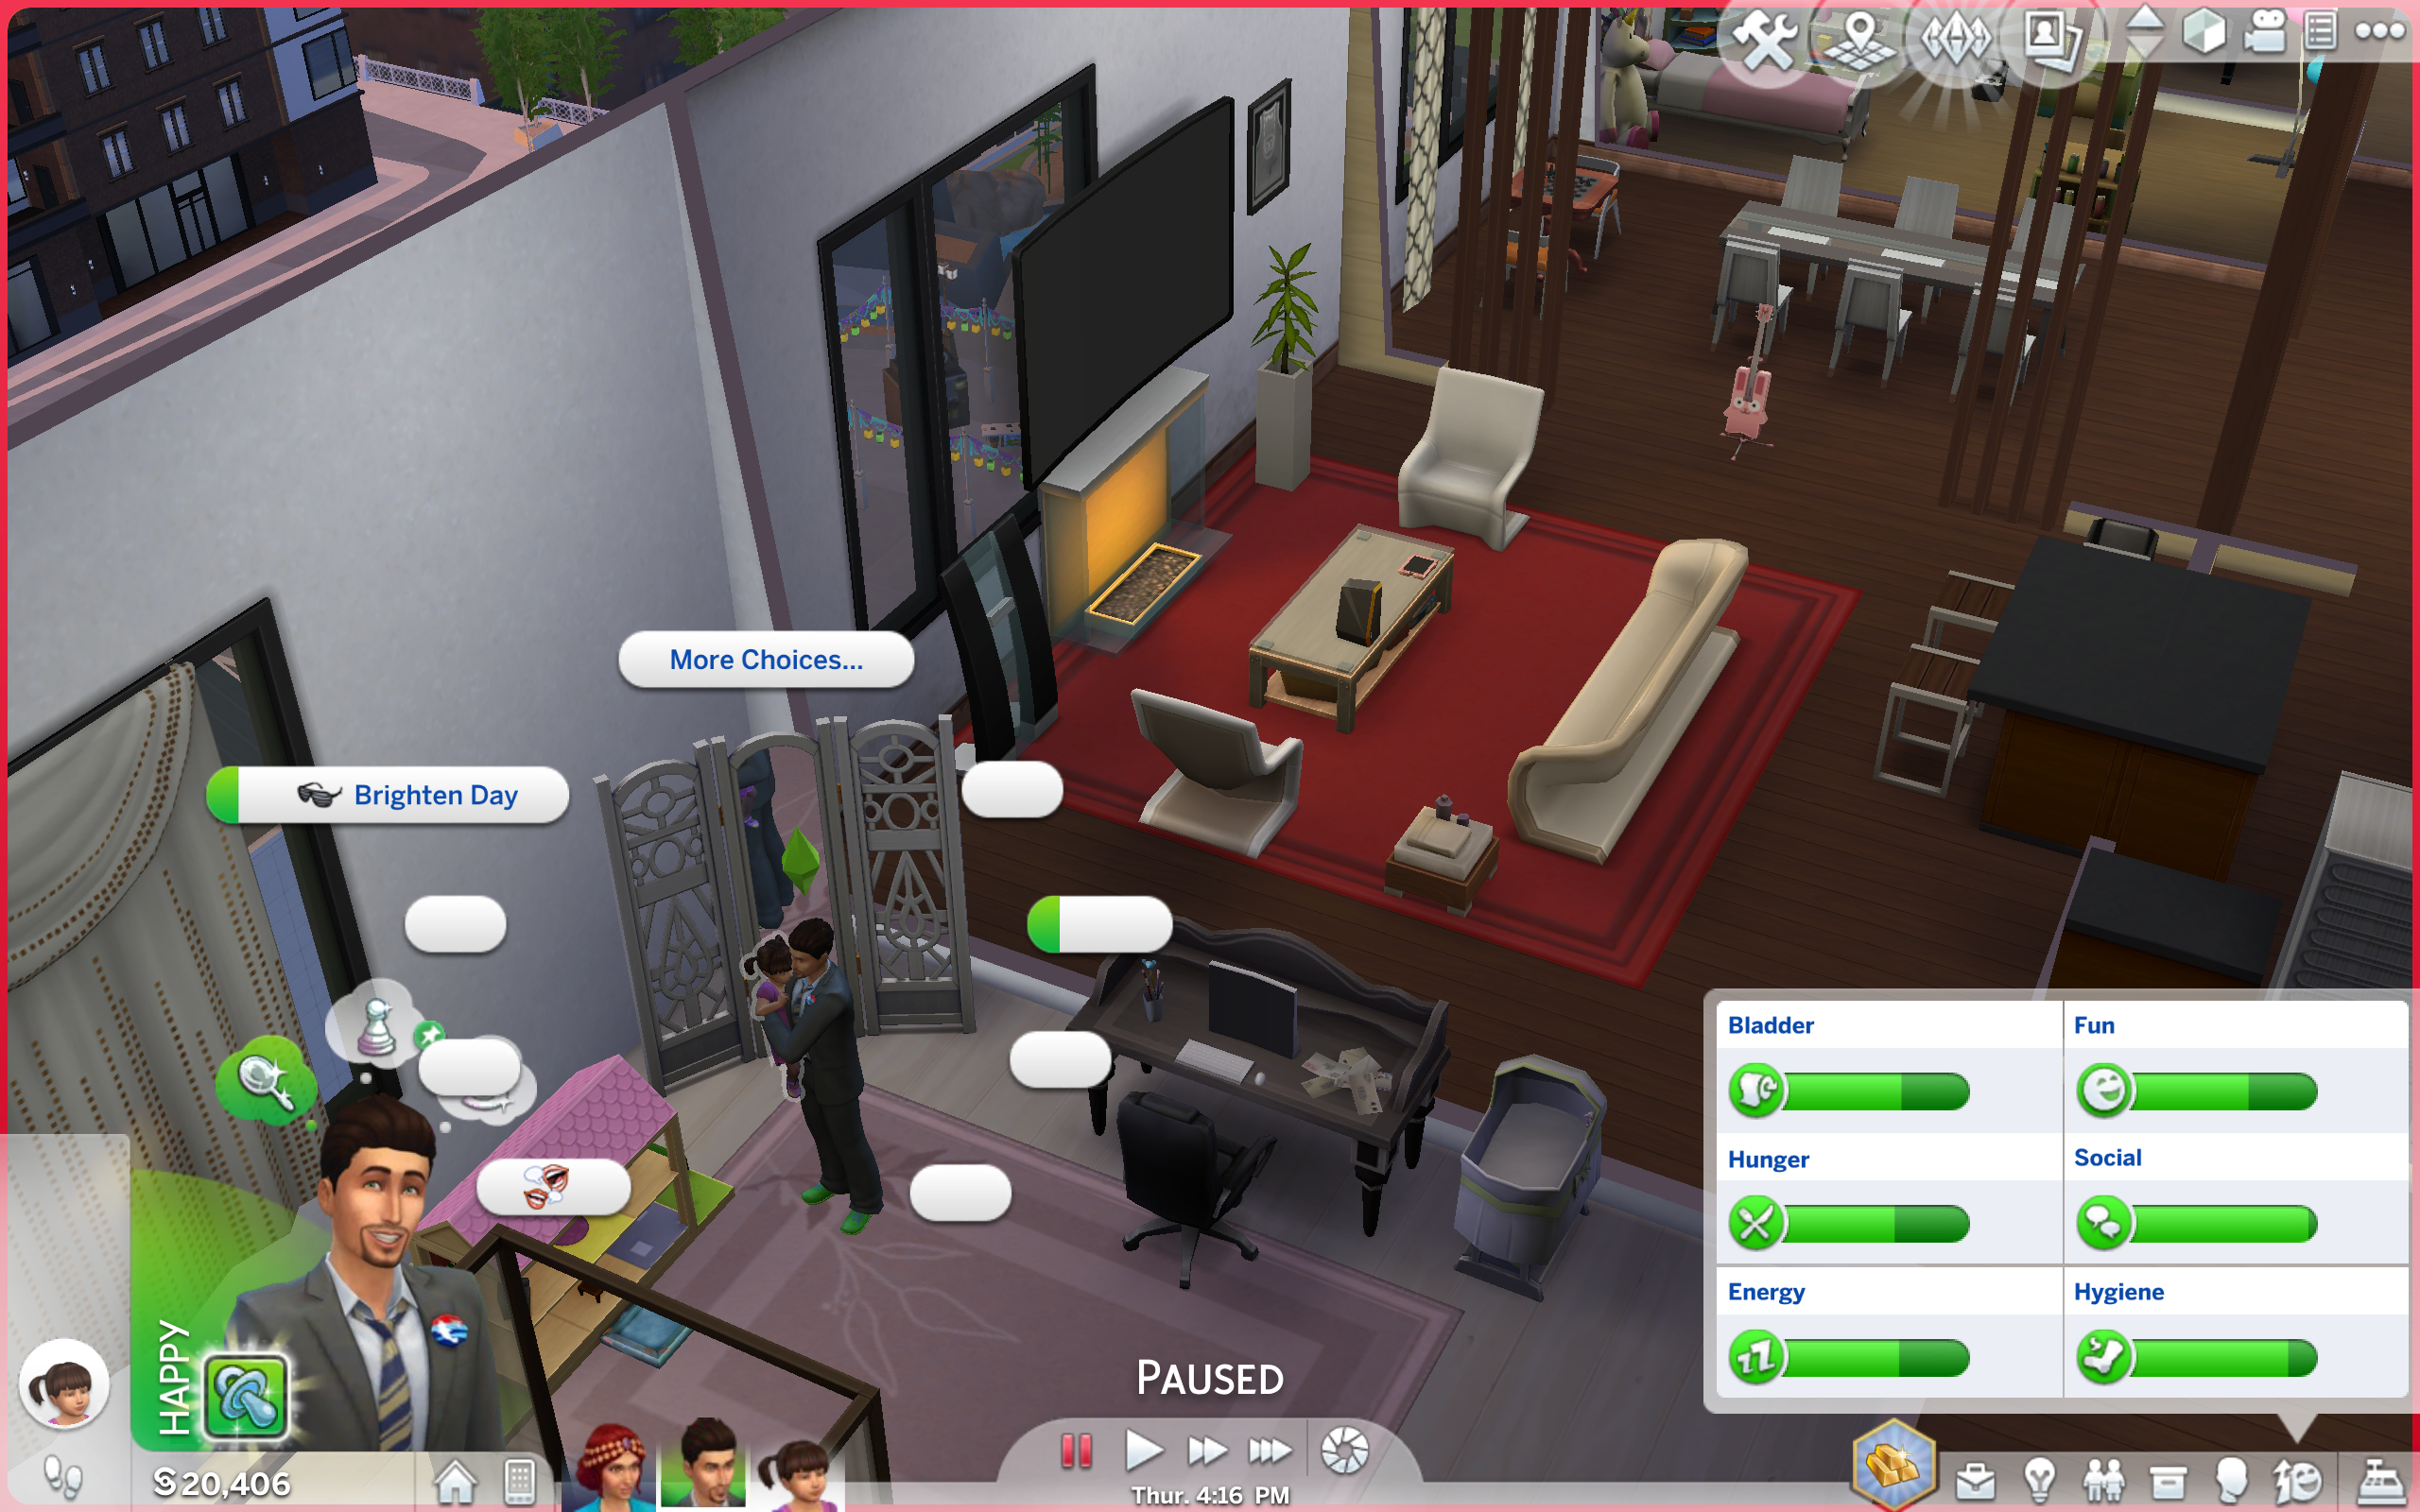 Sims 4 Game Problem: The labels on actions won't show up! - Answer HQ